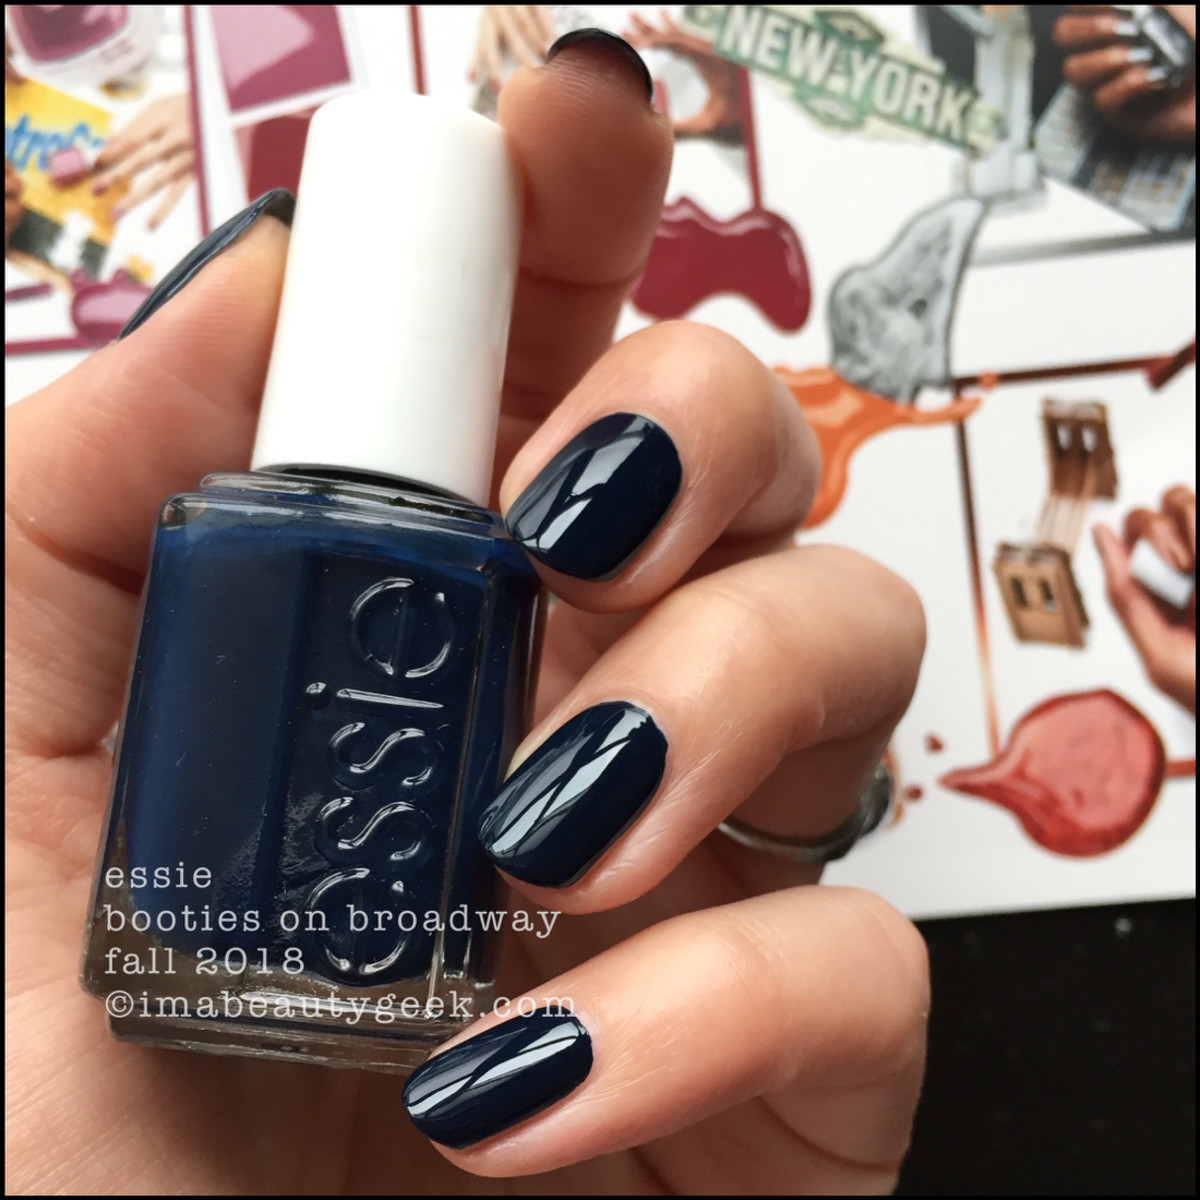 Essie Booties on Broadway _ Essie Fall 2018 Collection